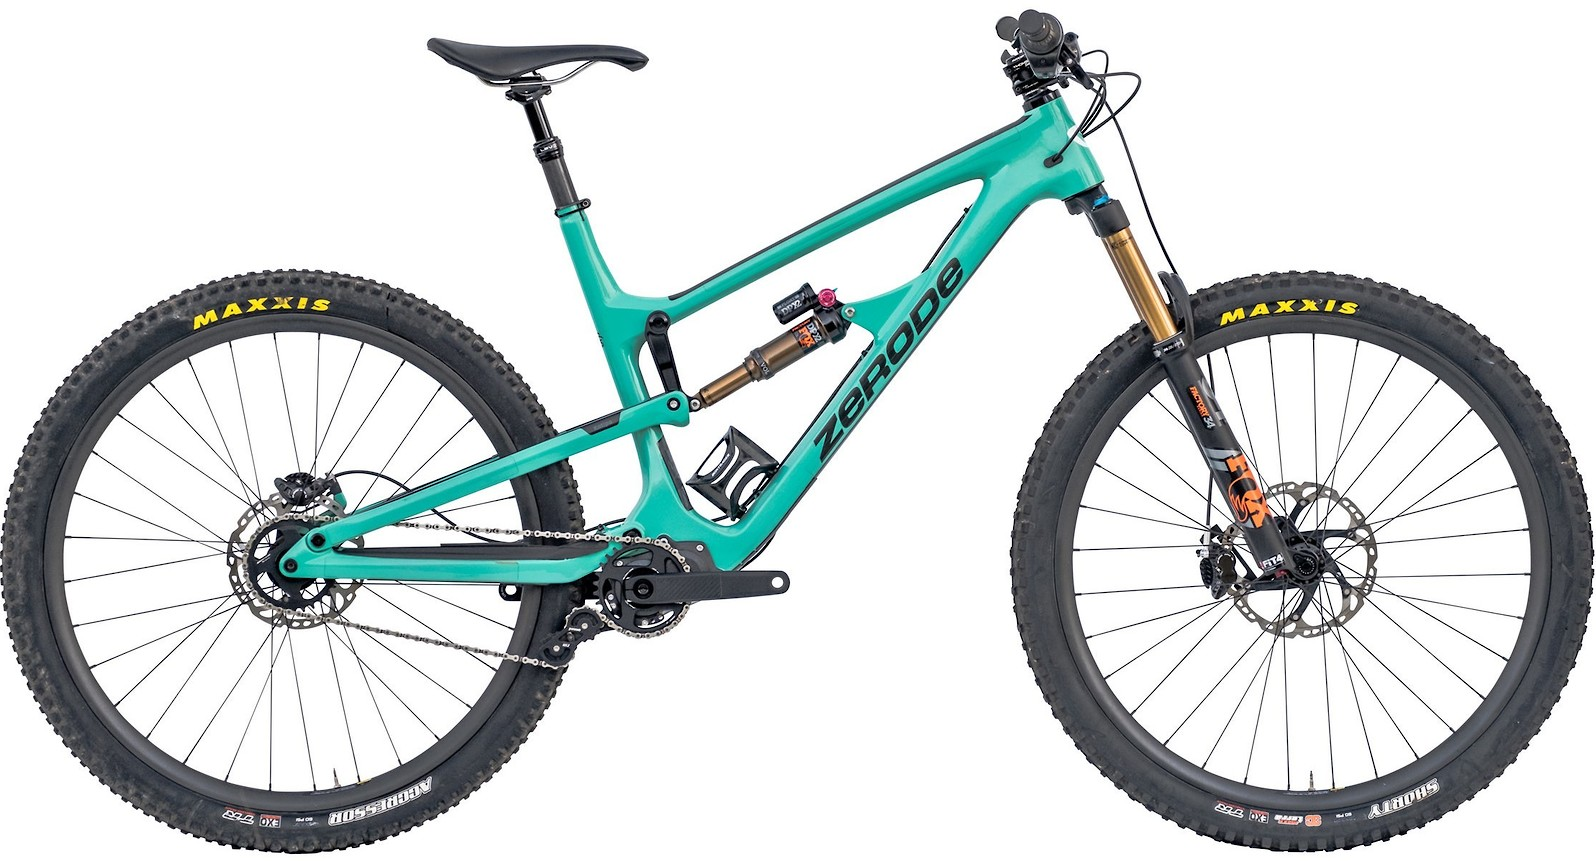 2020 Zerode Katipo Trail Peppermint (Image does not accurately represent build specs)